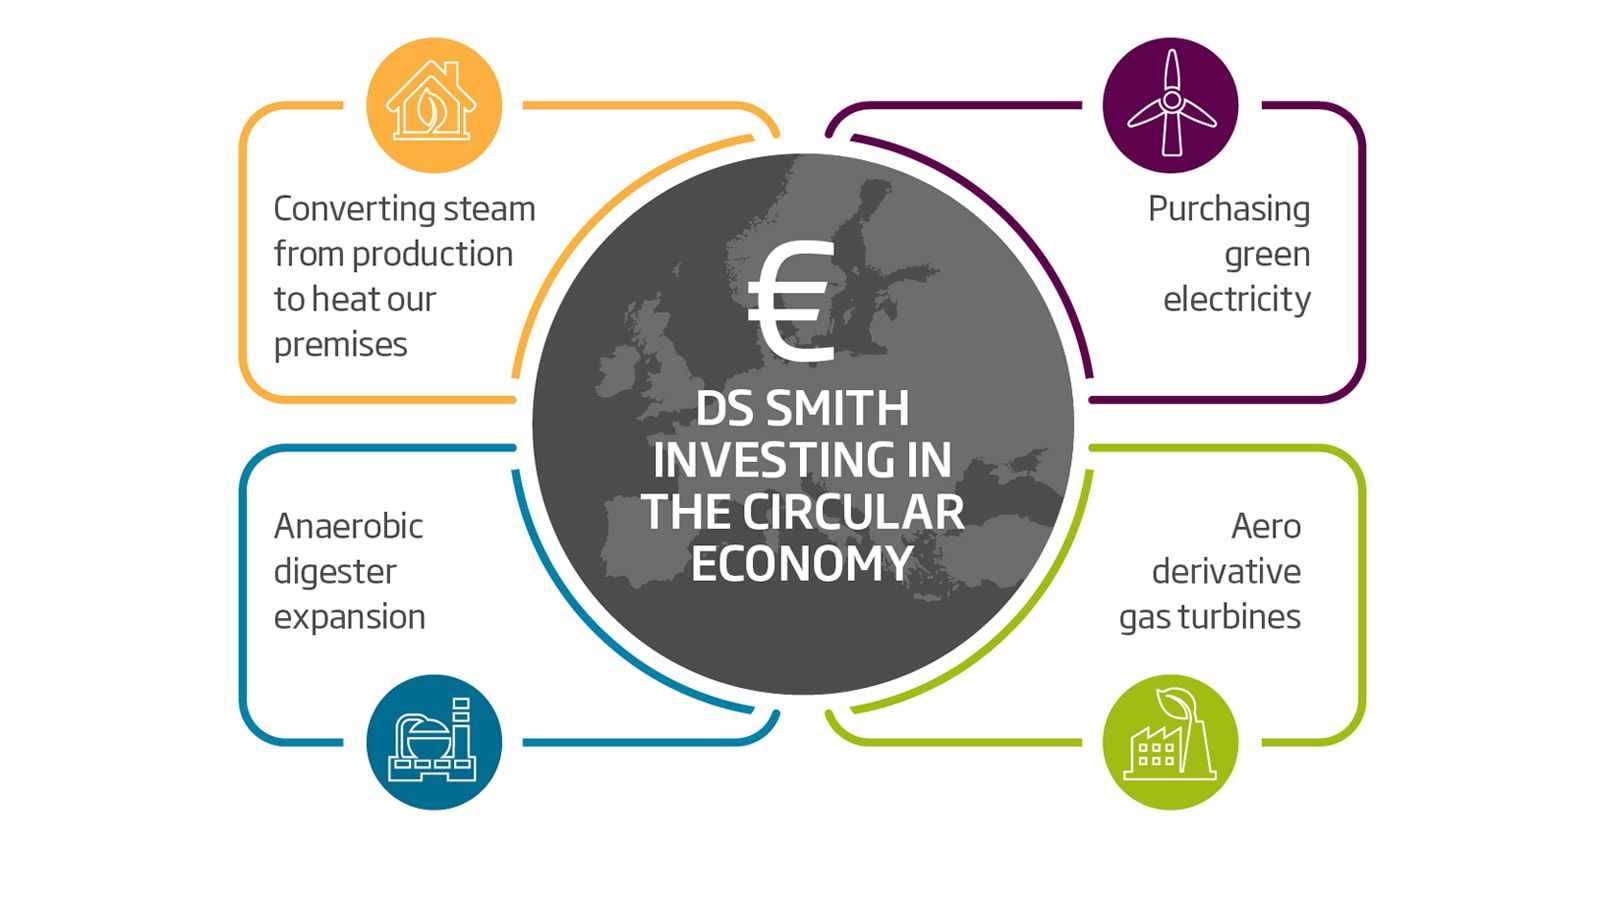 Across Europe, we're investing strategically in green electricity, renewables and energy efficiency